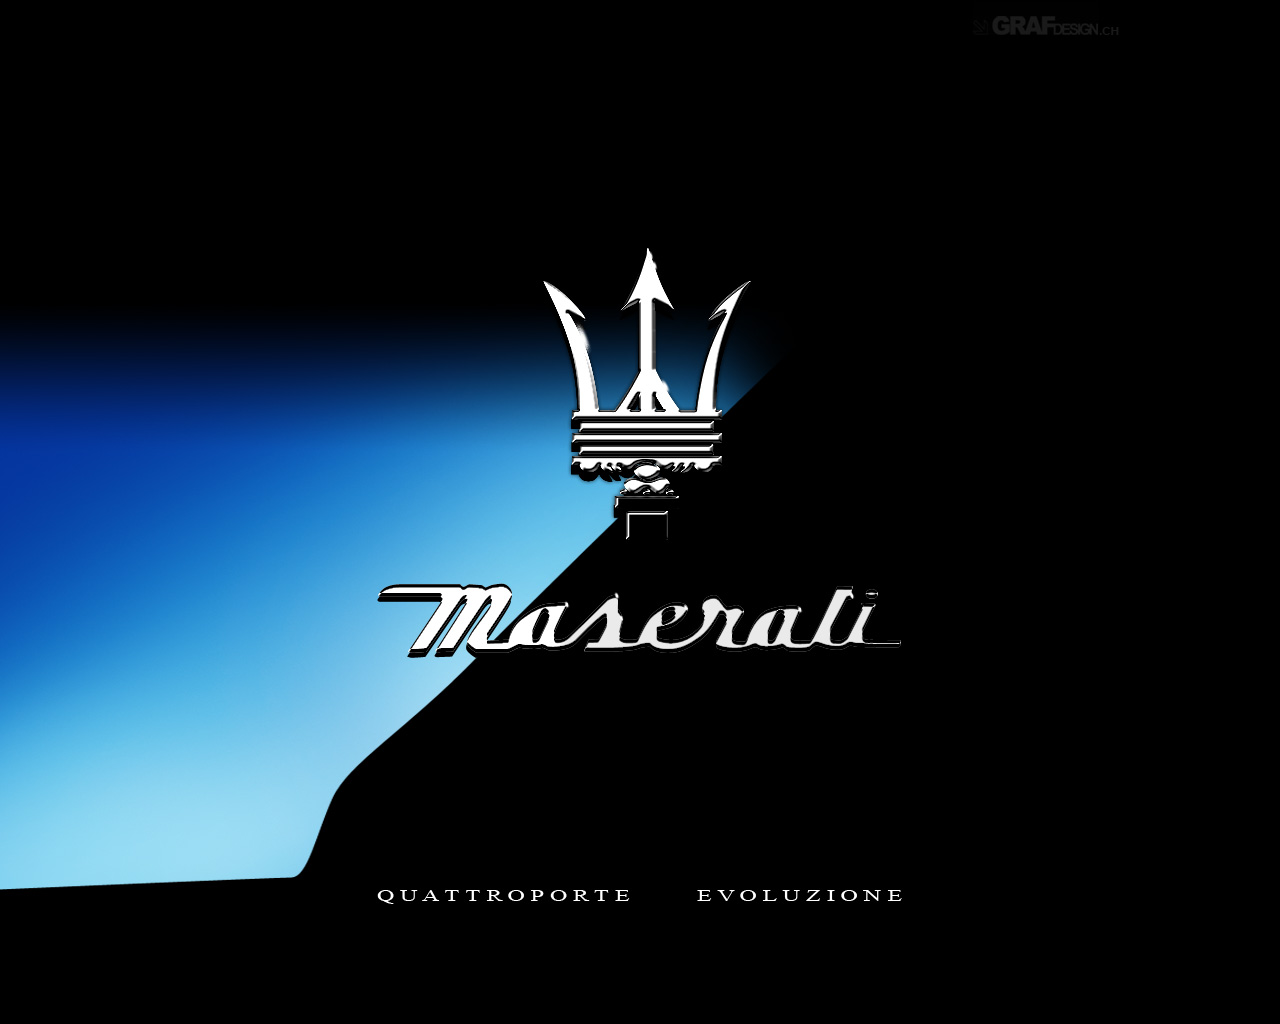 maserati logo wallpaper maserati logo wallpaper hd maserati logo badge 1280x1024